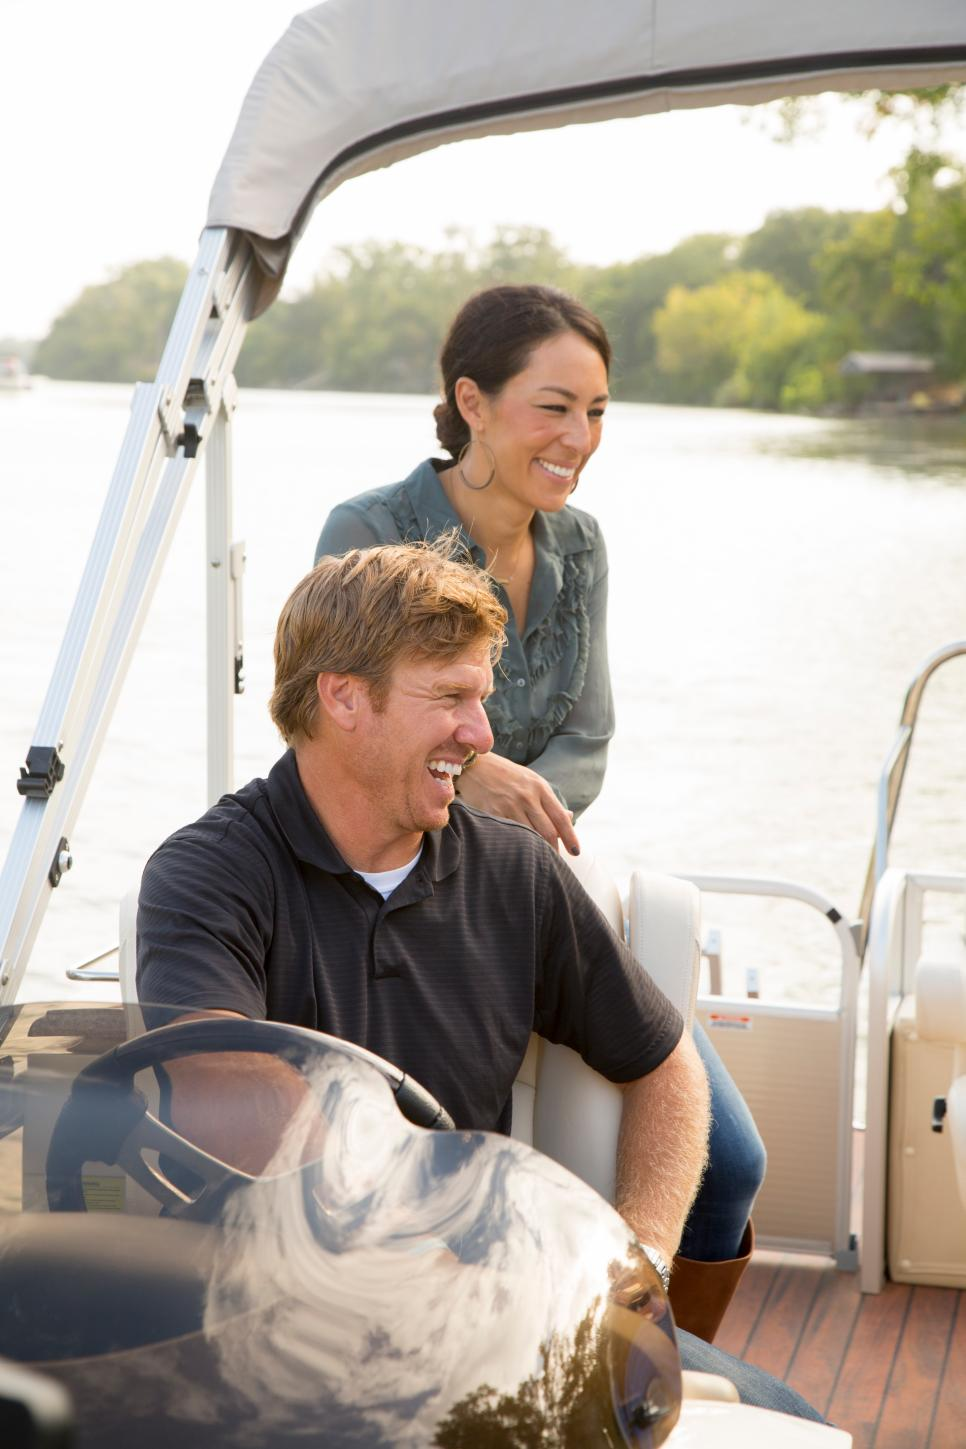 Chip and Joanna Gaines Take a Boat Ride to the Renovated Home